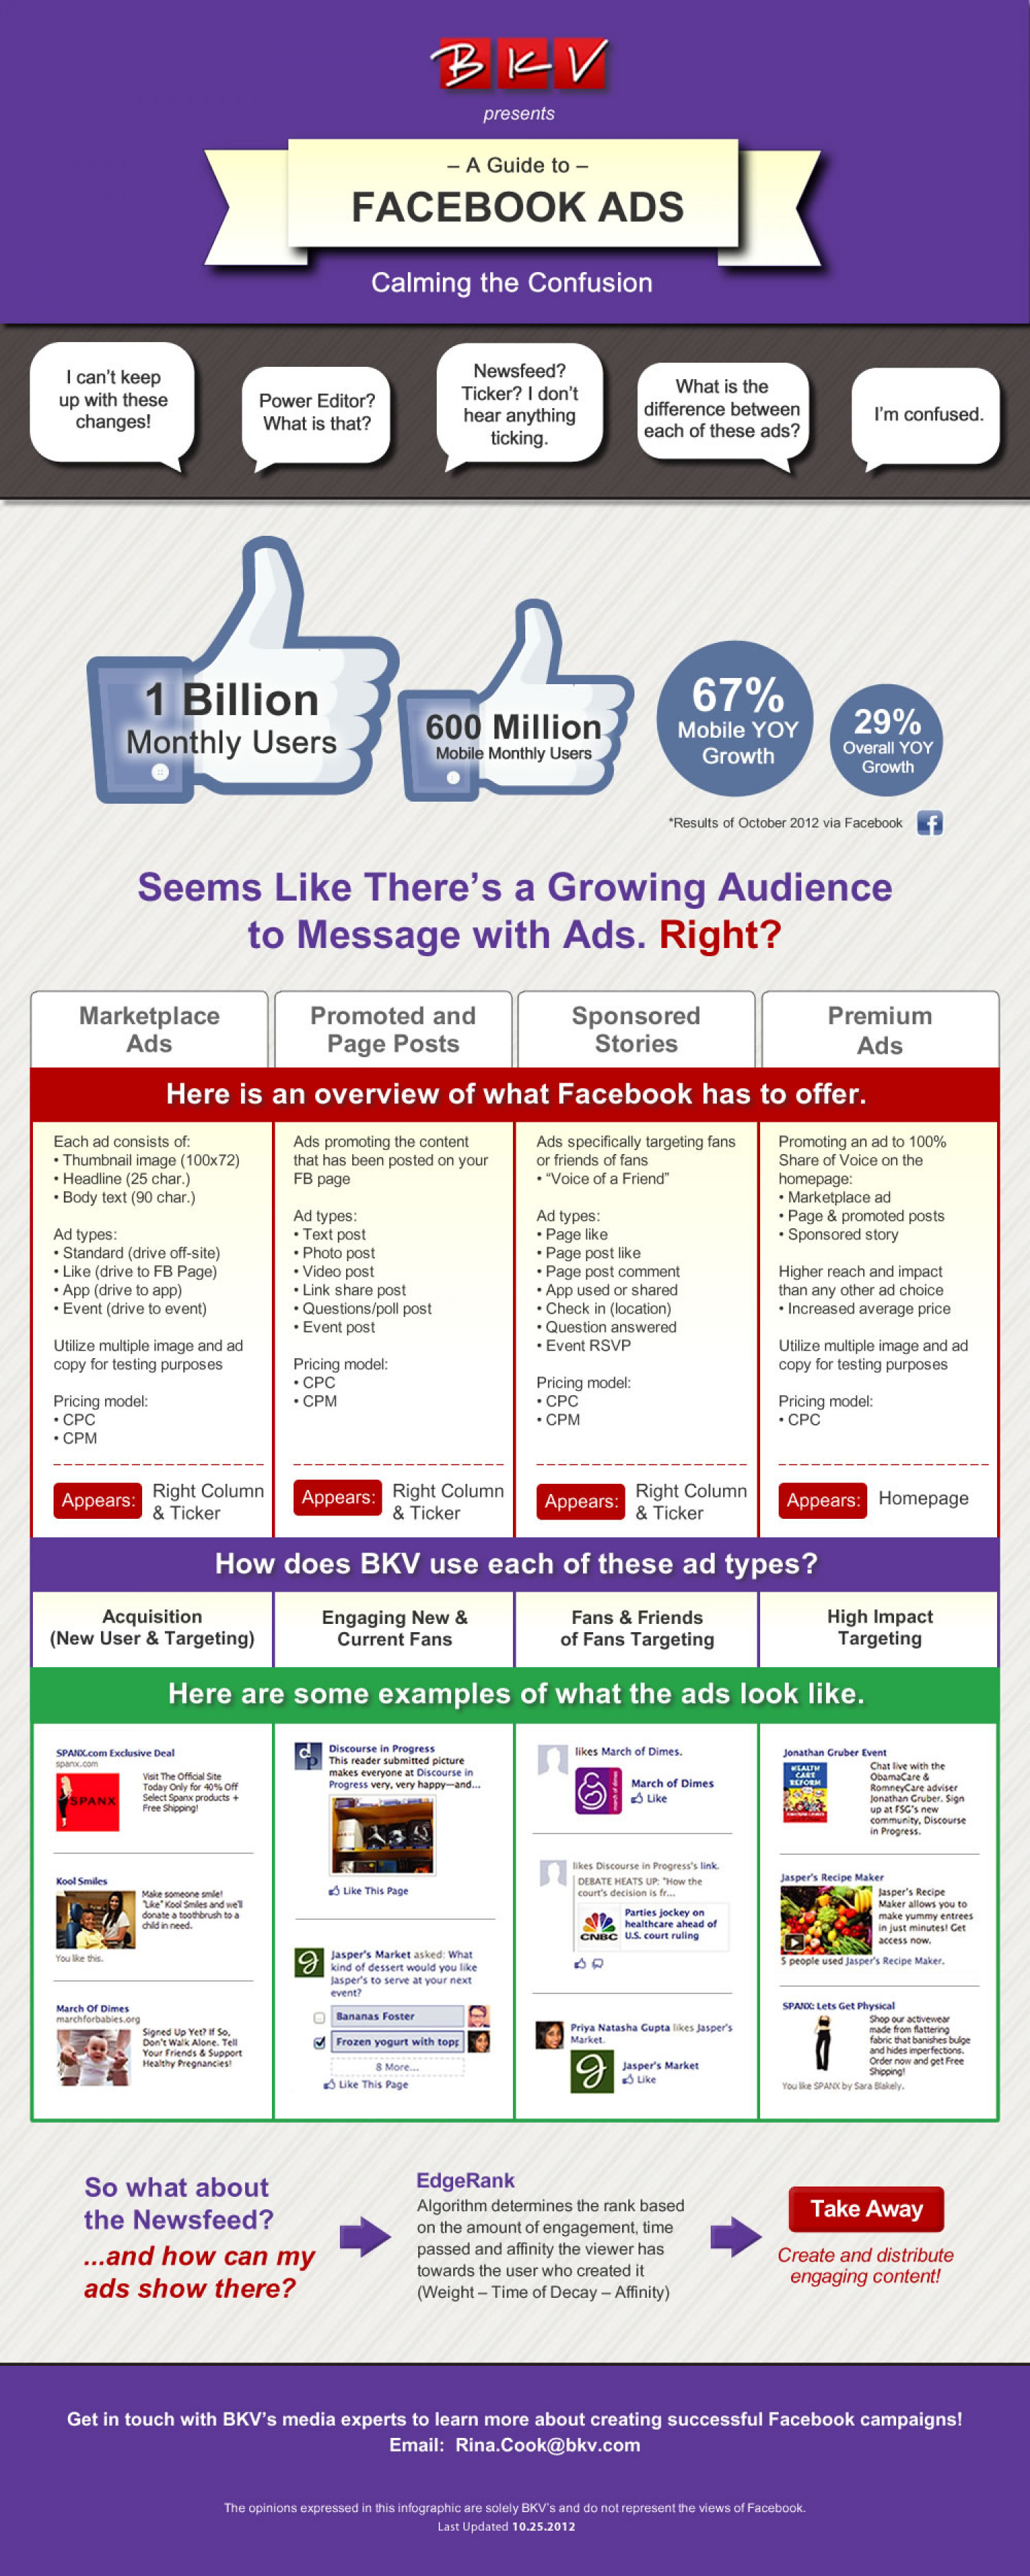 A Guide to Facebook Ads: Calming the Confusion Infographic